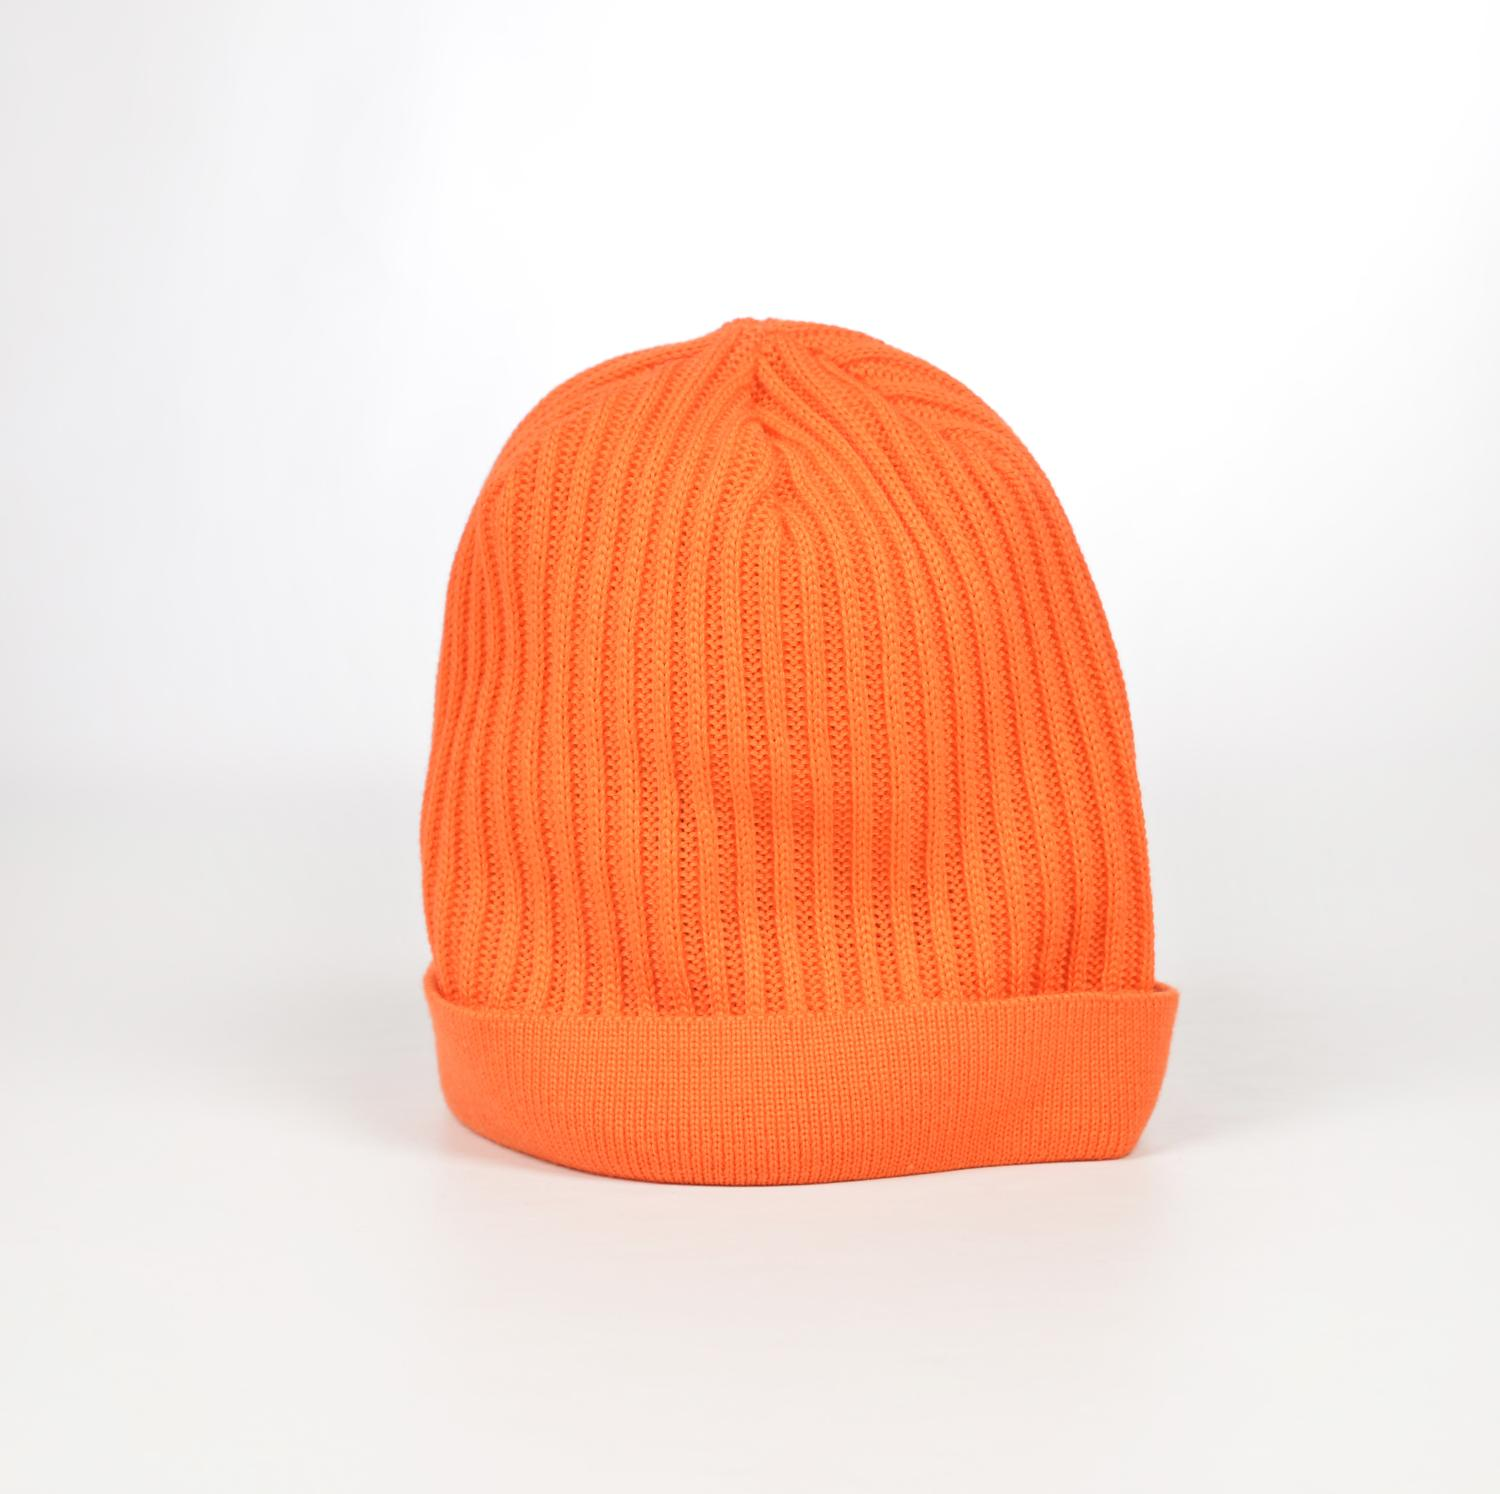 Mütze unisex, orange - Lenz & Leif